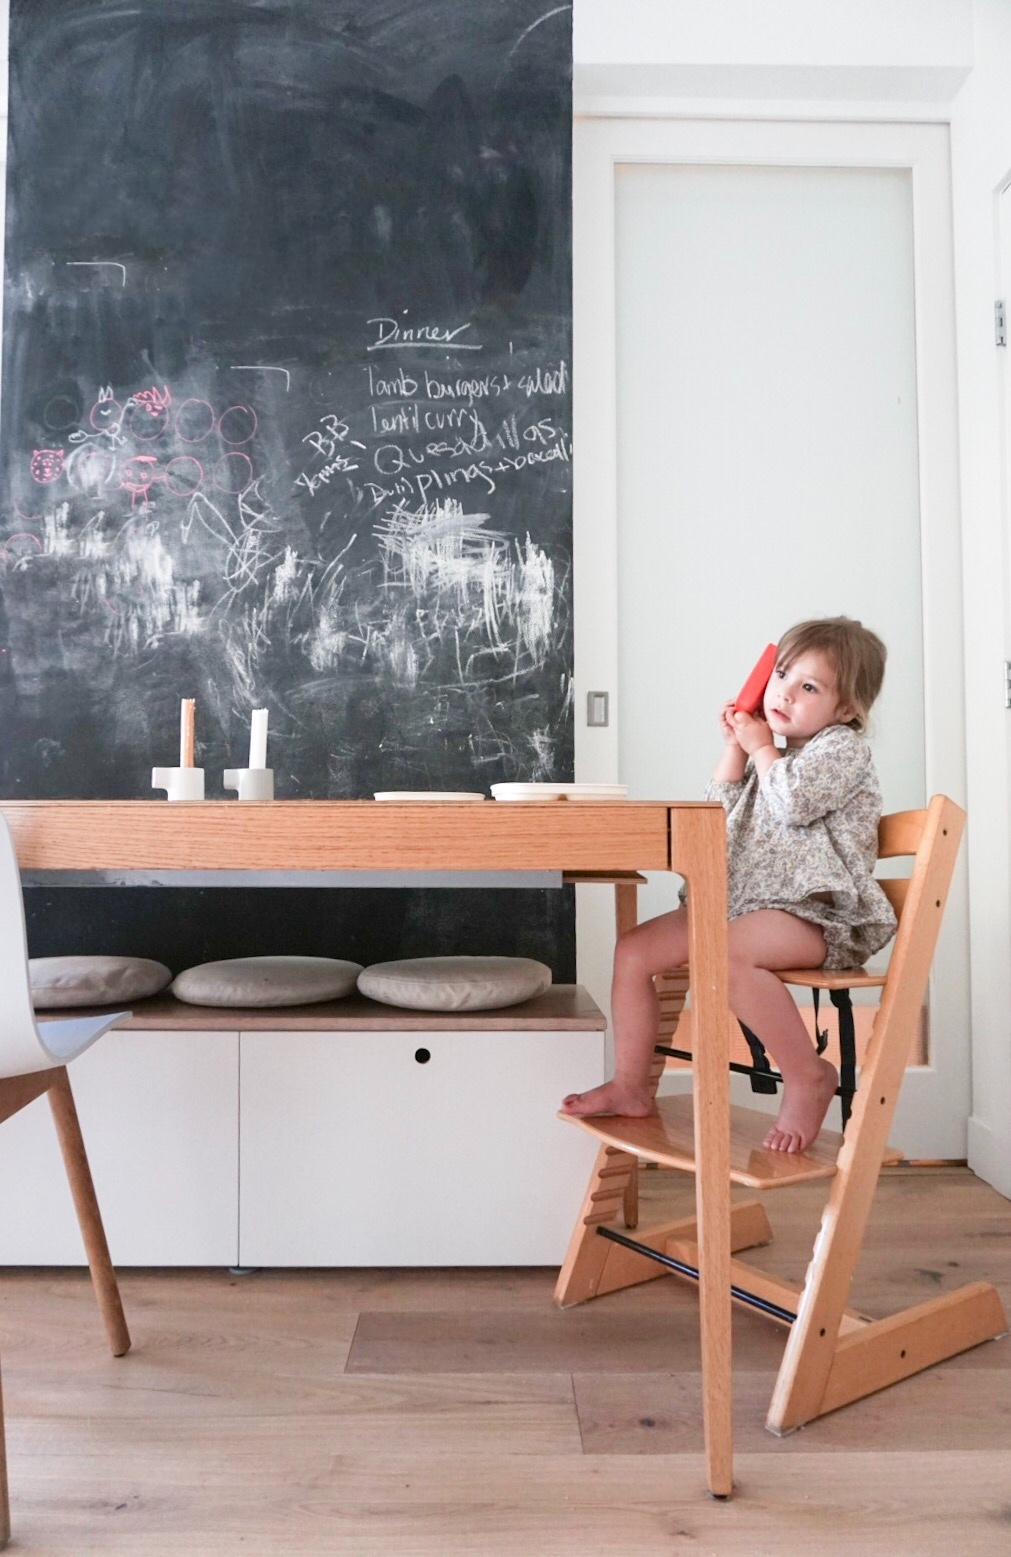 Mae on the phone  (in PV ), in our second-hand Stokke Tripp Trapp, Ikea Storage Bench in the background